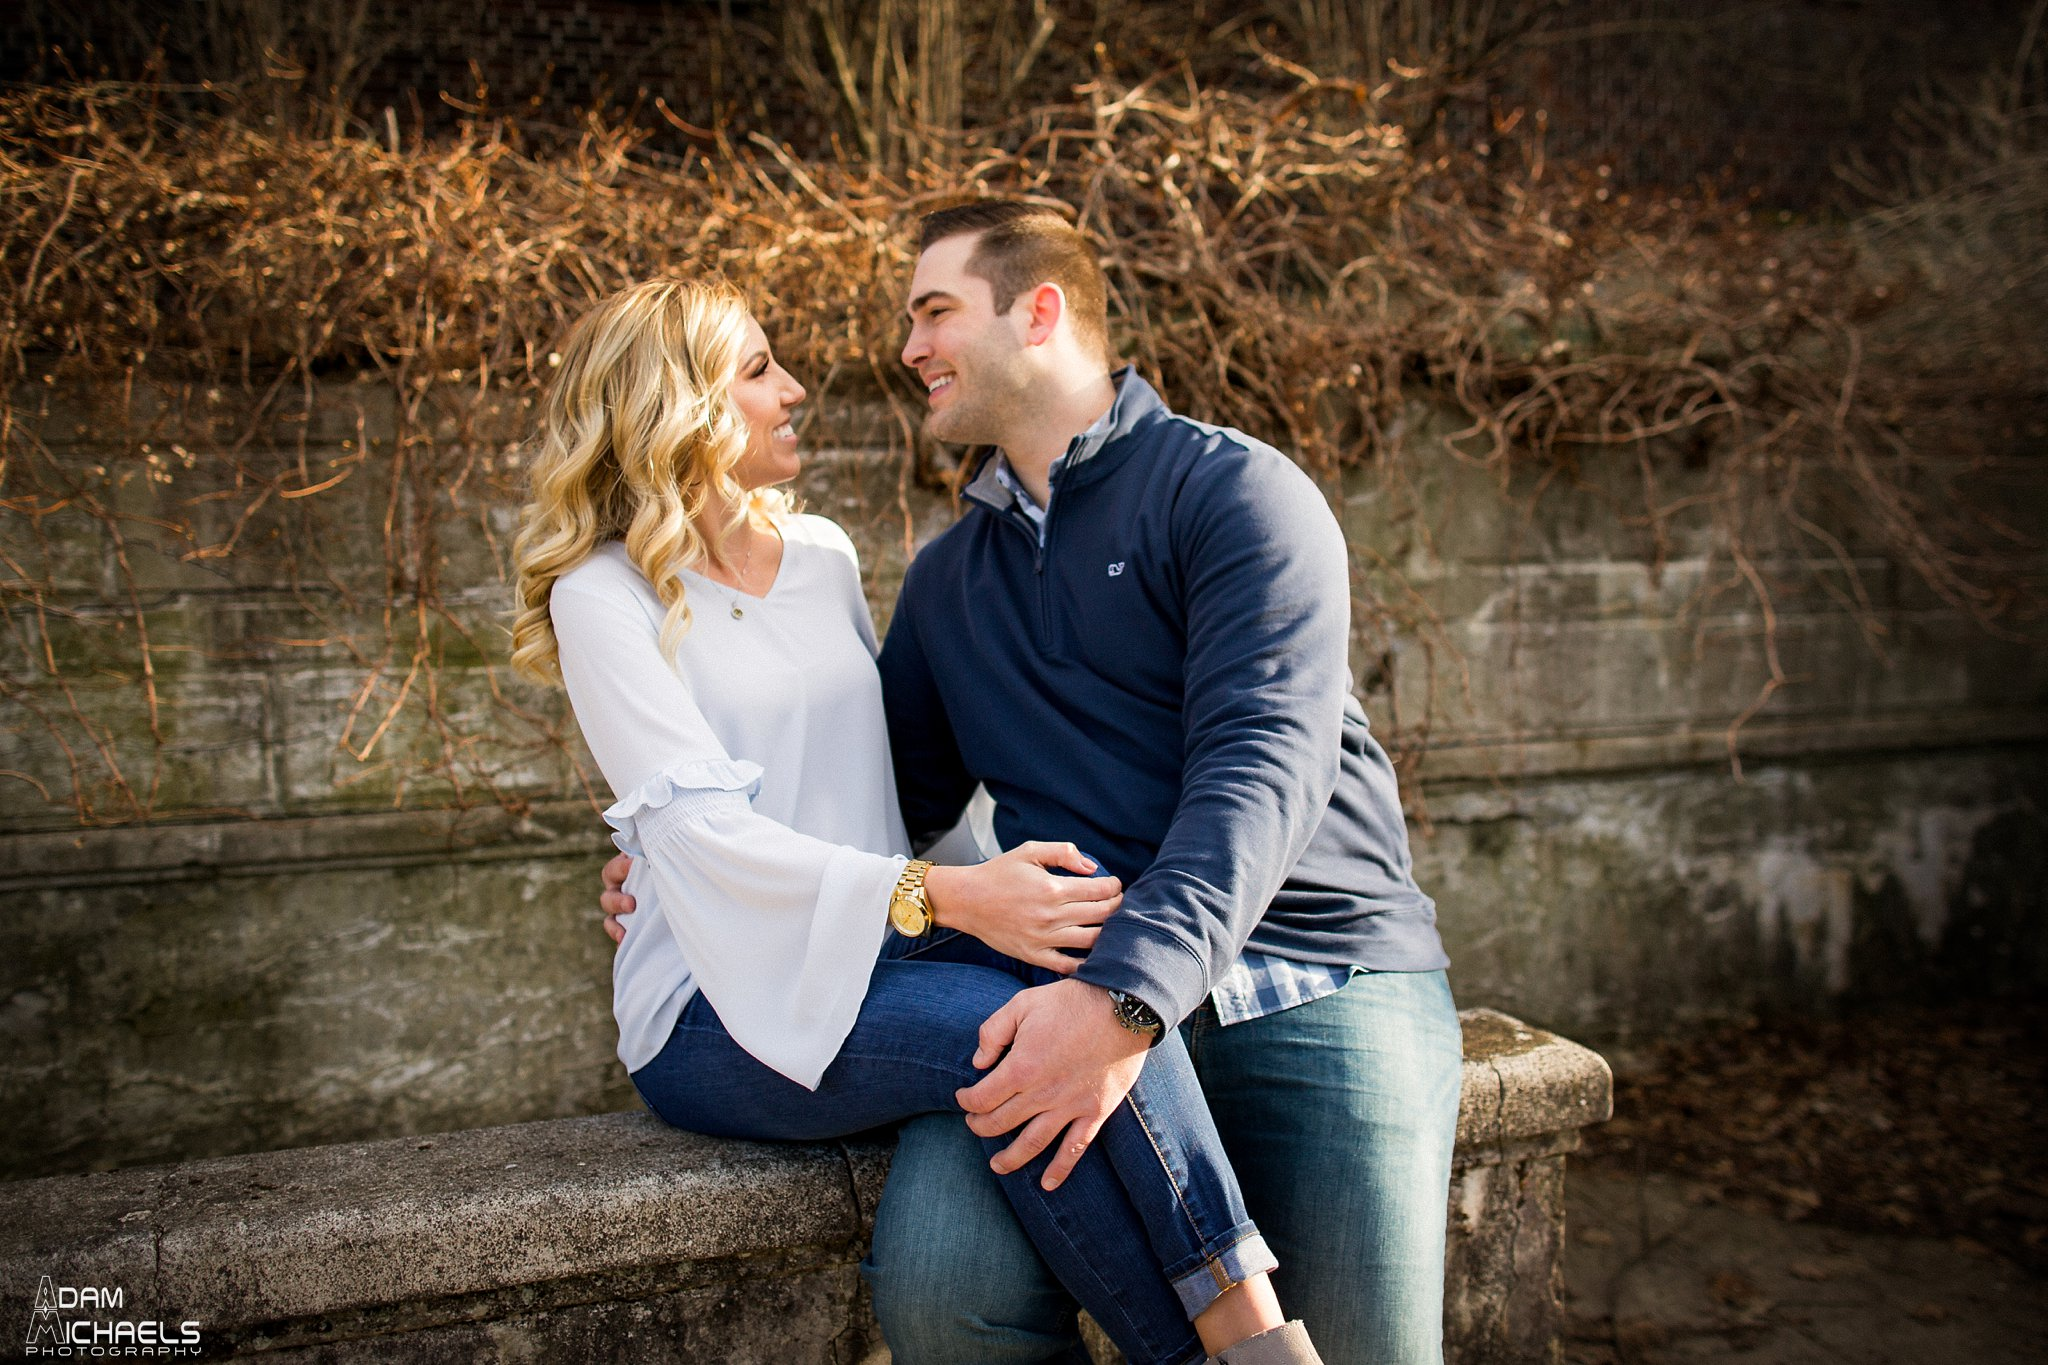 Mellon Park Engagement Save the Date Photos-3.jpg